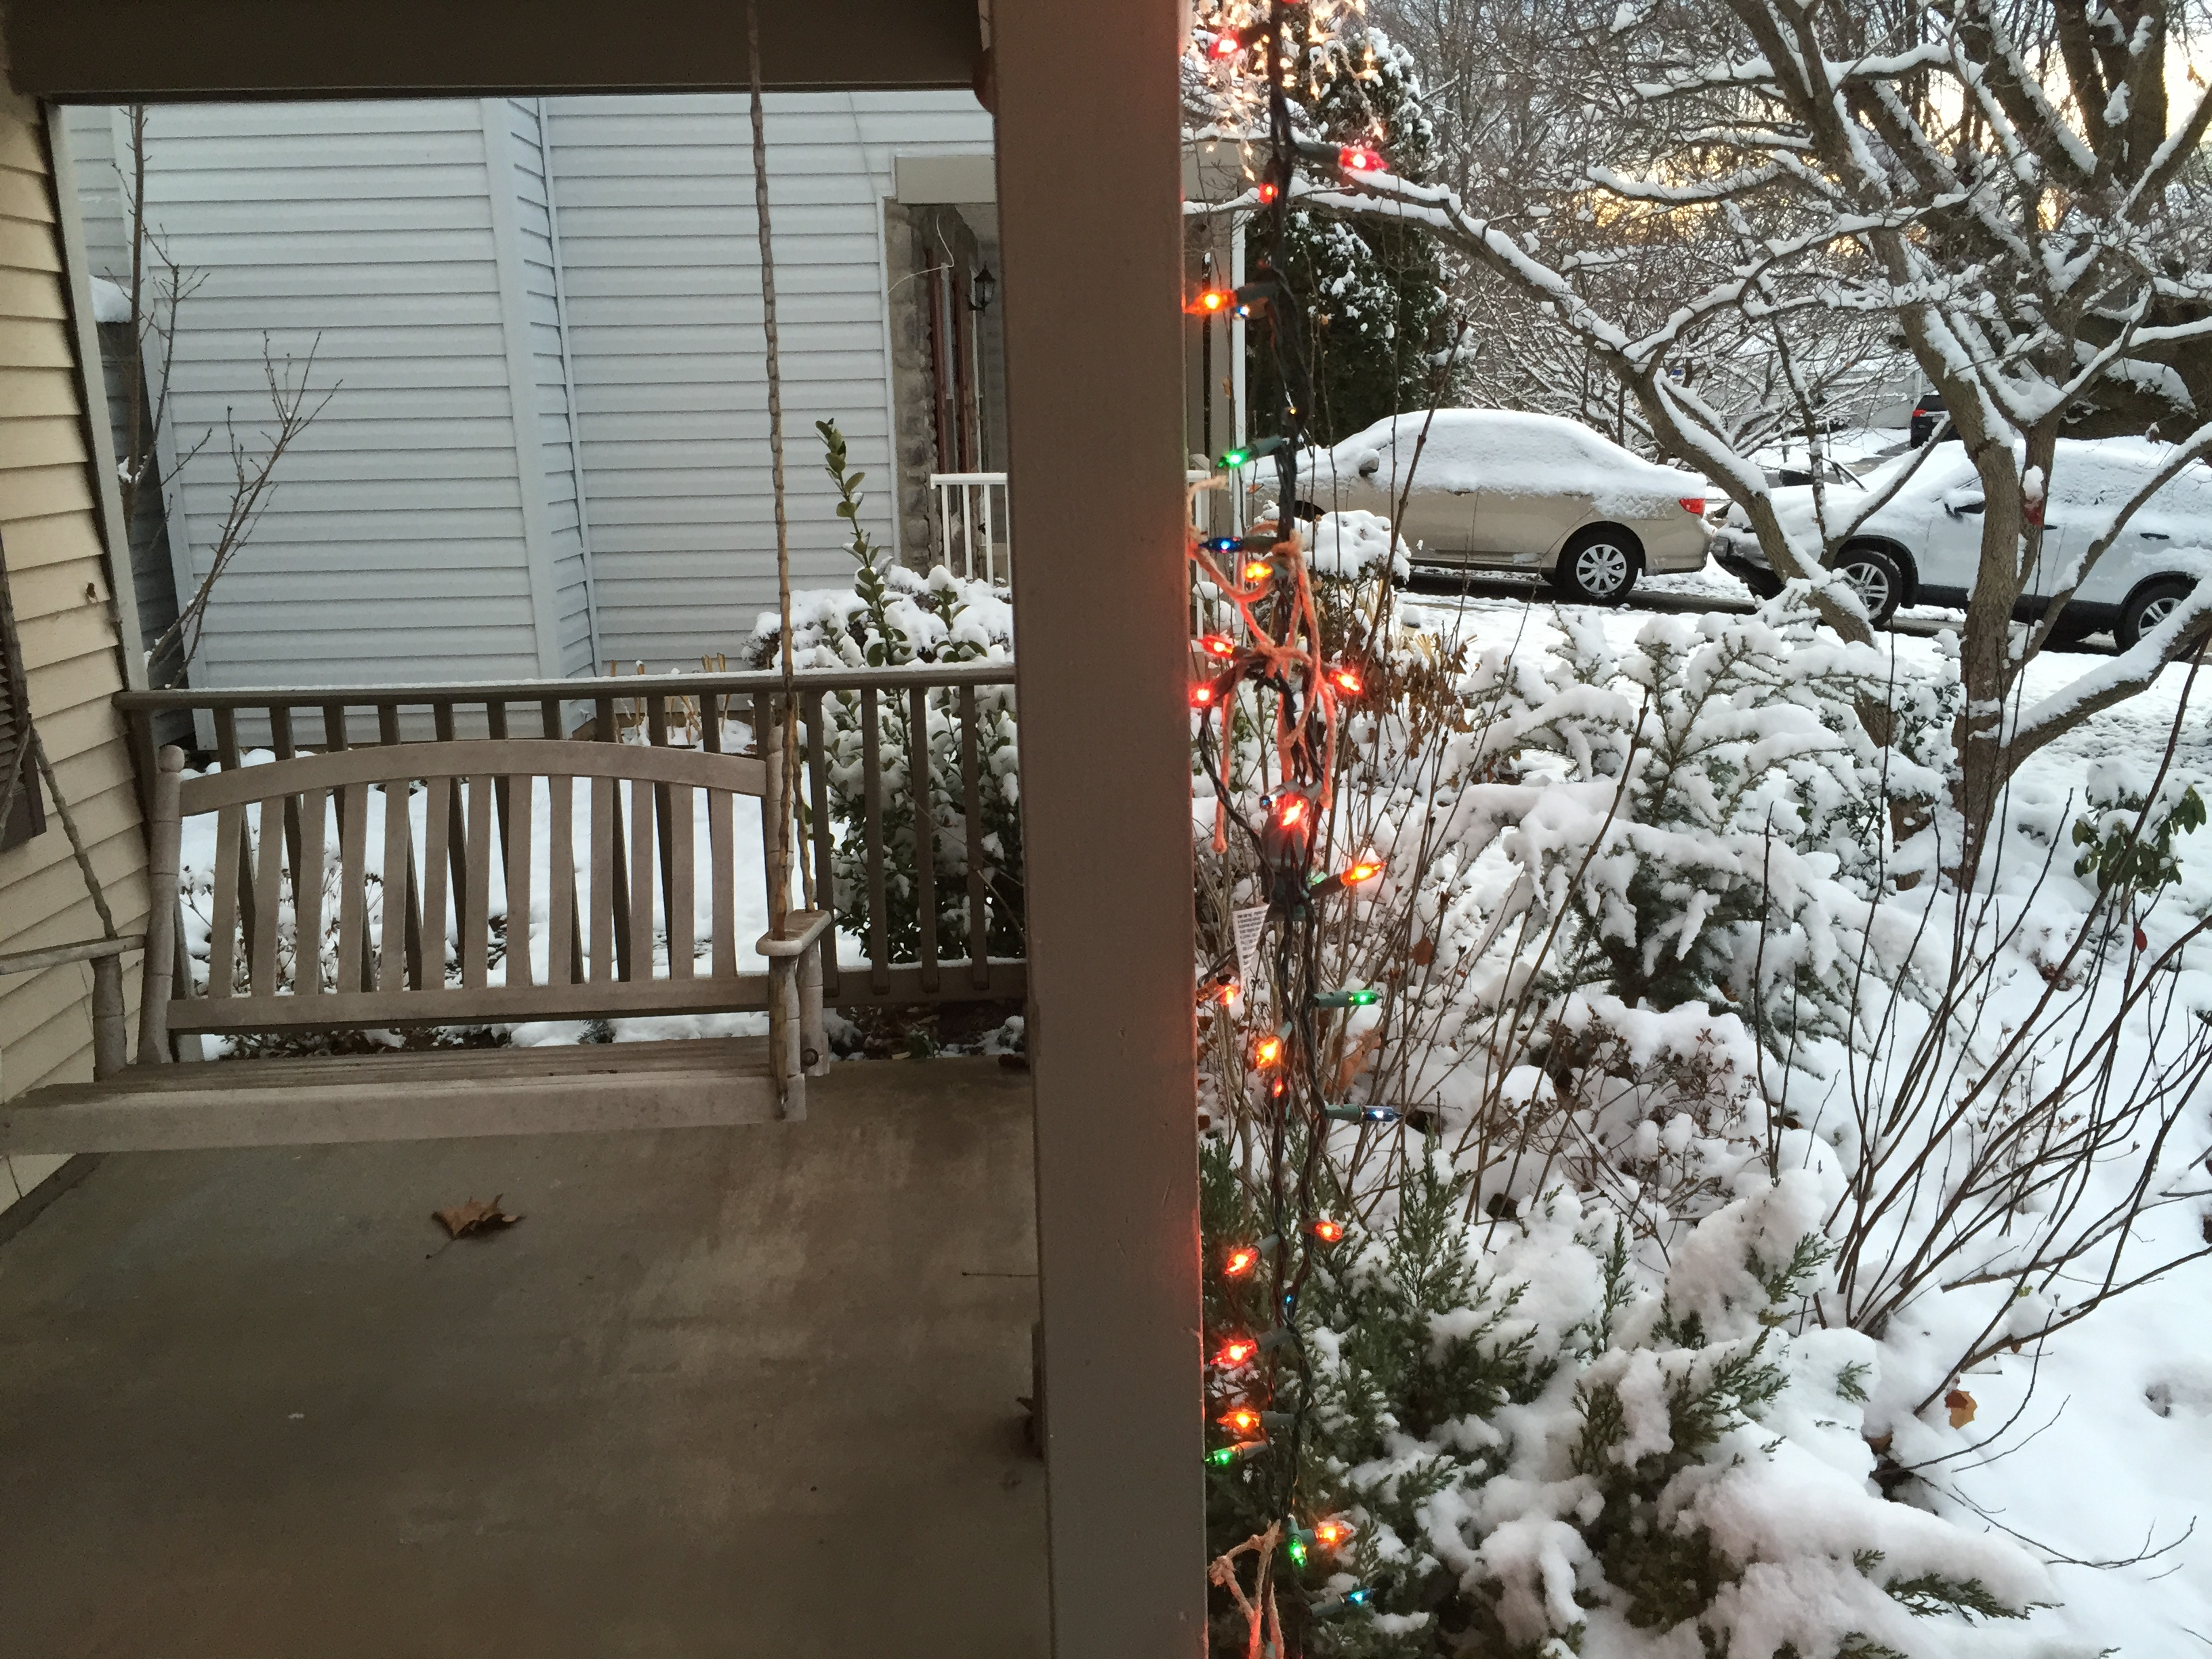 File:2017-12-10 07 16 14 A porch, Christmas lights and snow covered ...